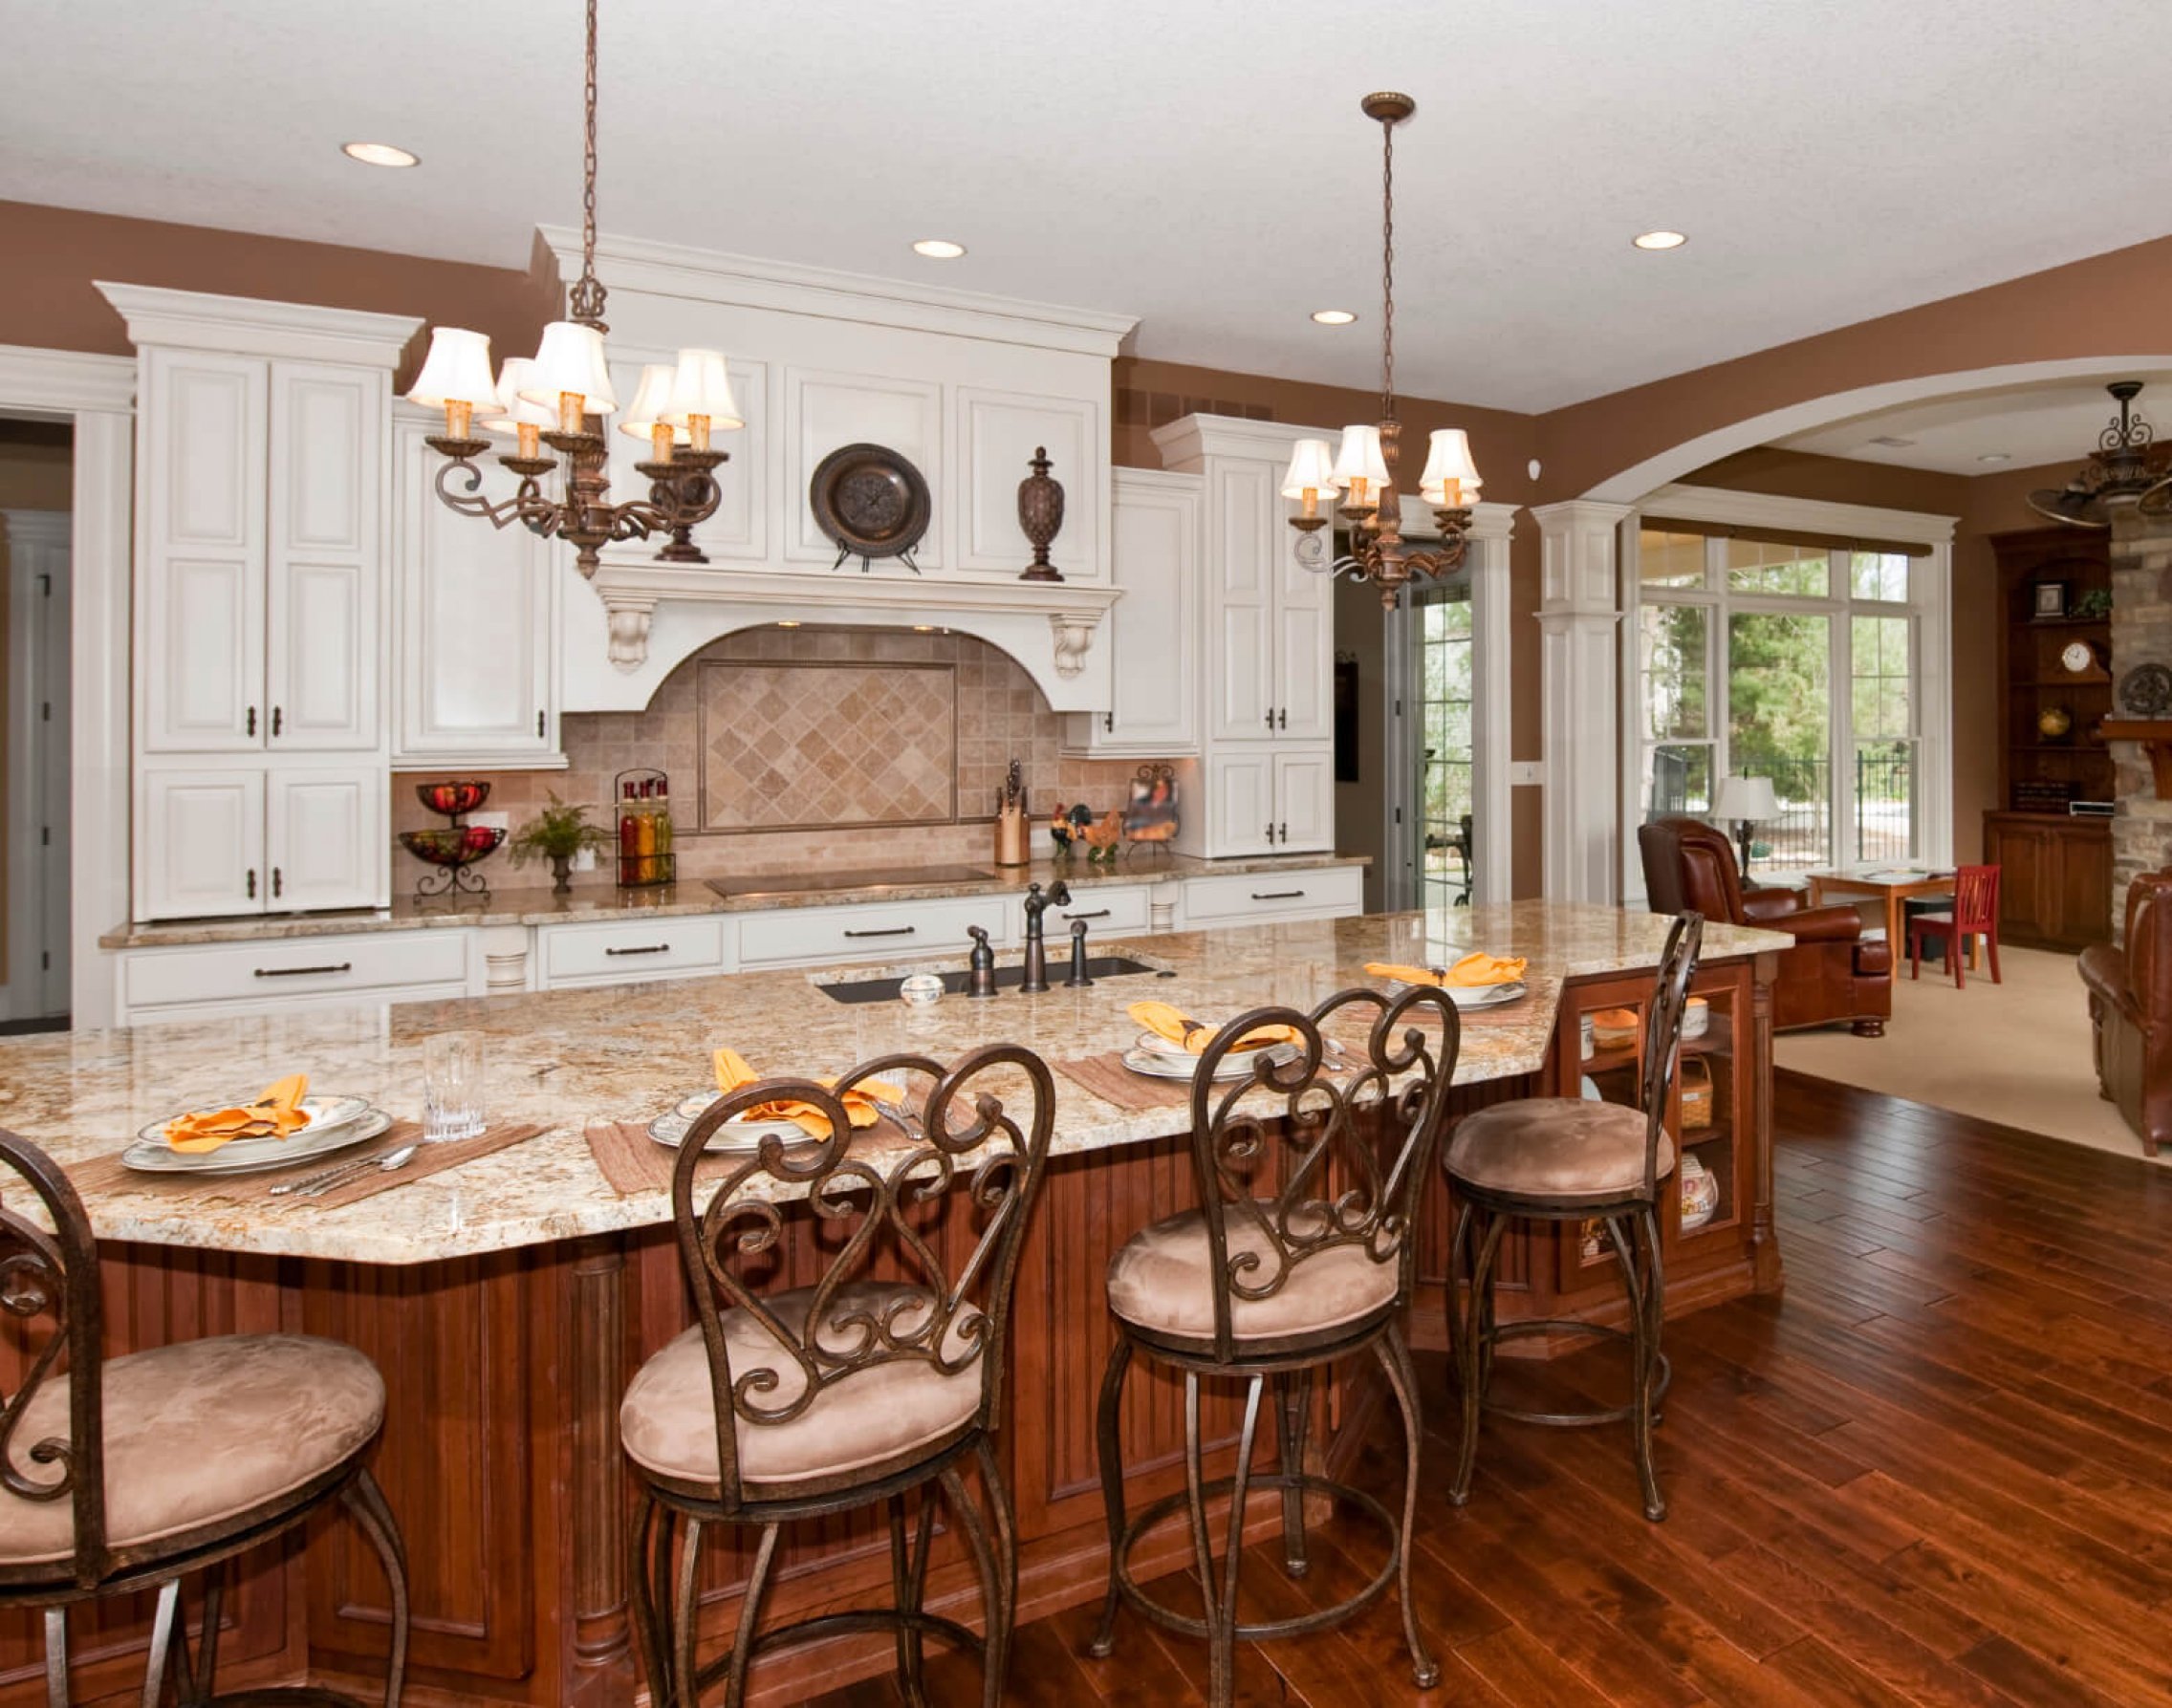 custom made kitchen island with seating | lovelyspaces.com